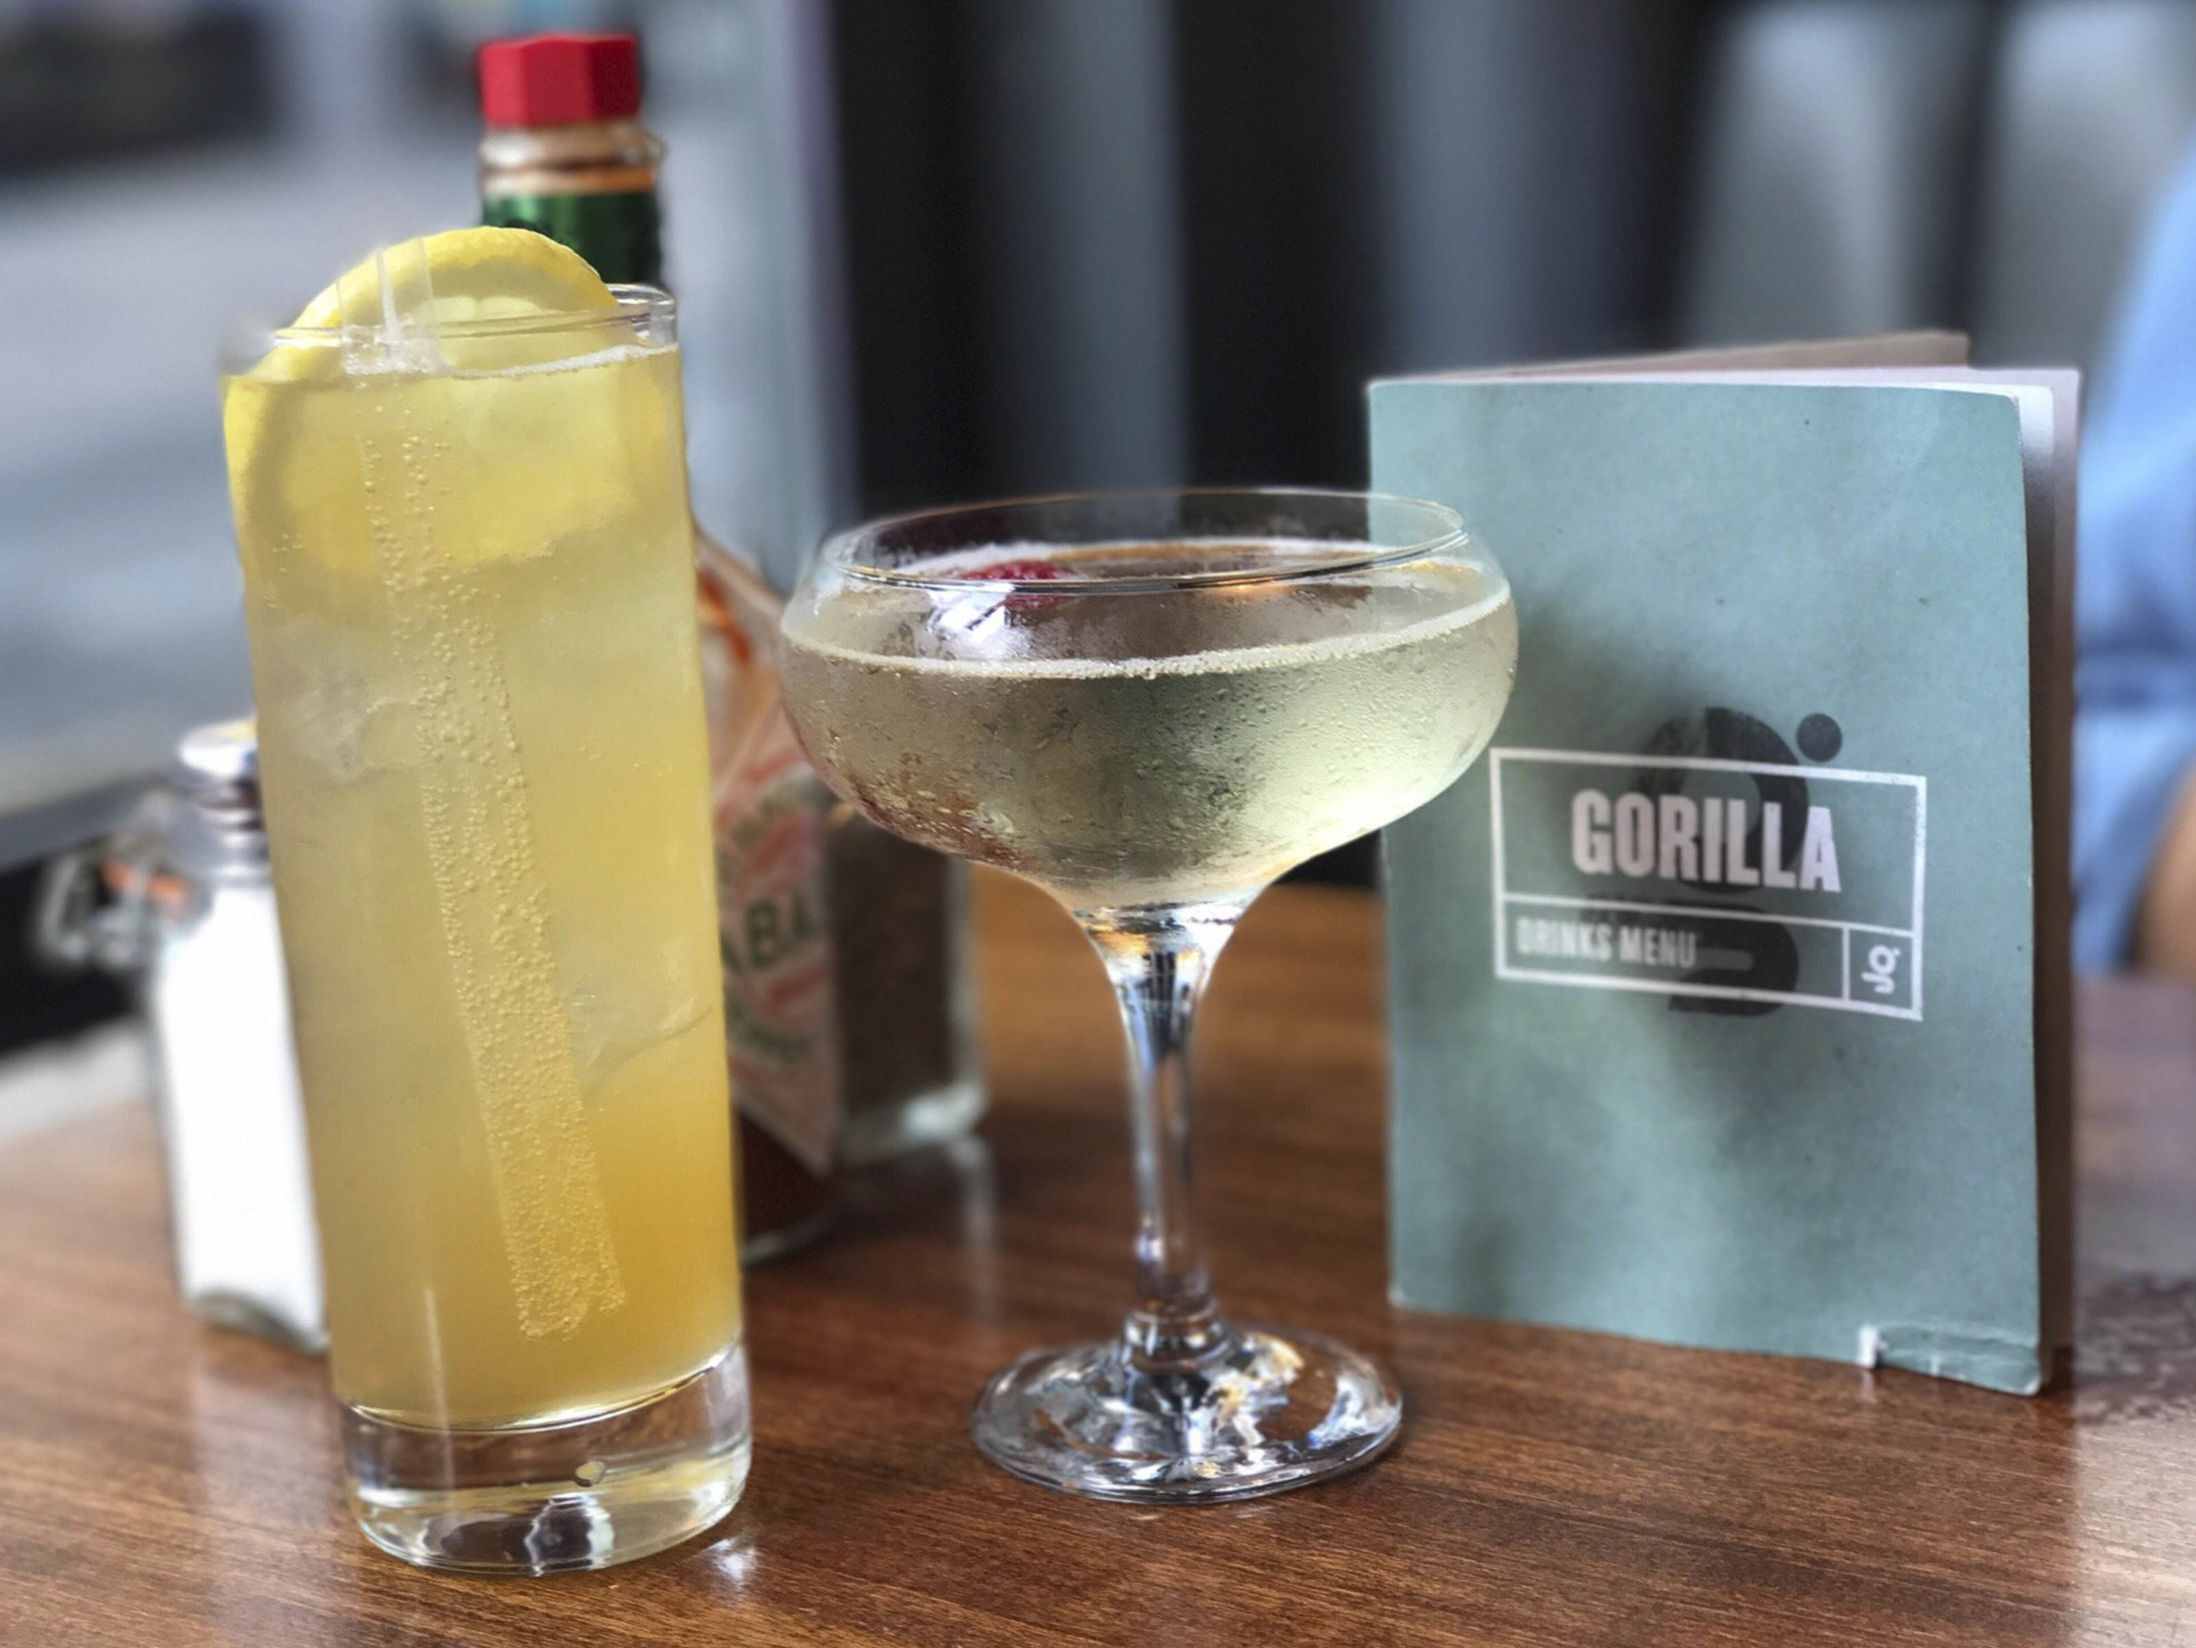 Best Bars in Manchester - Gorilla